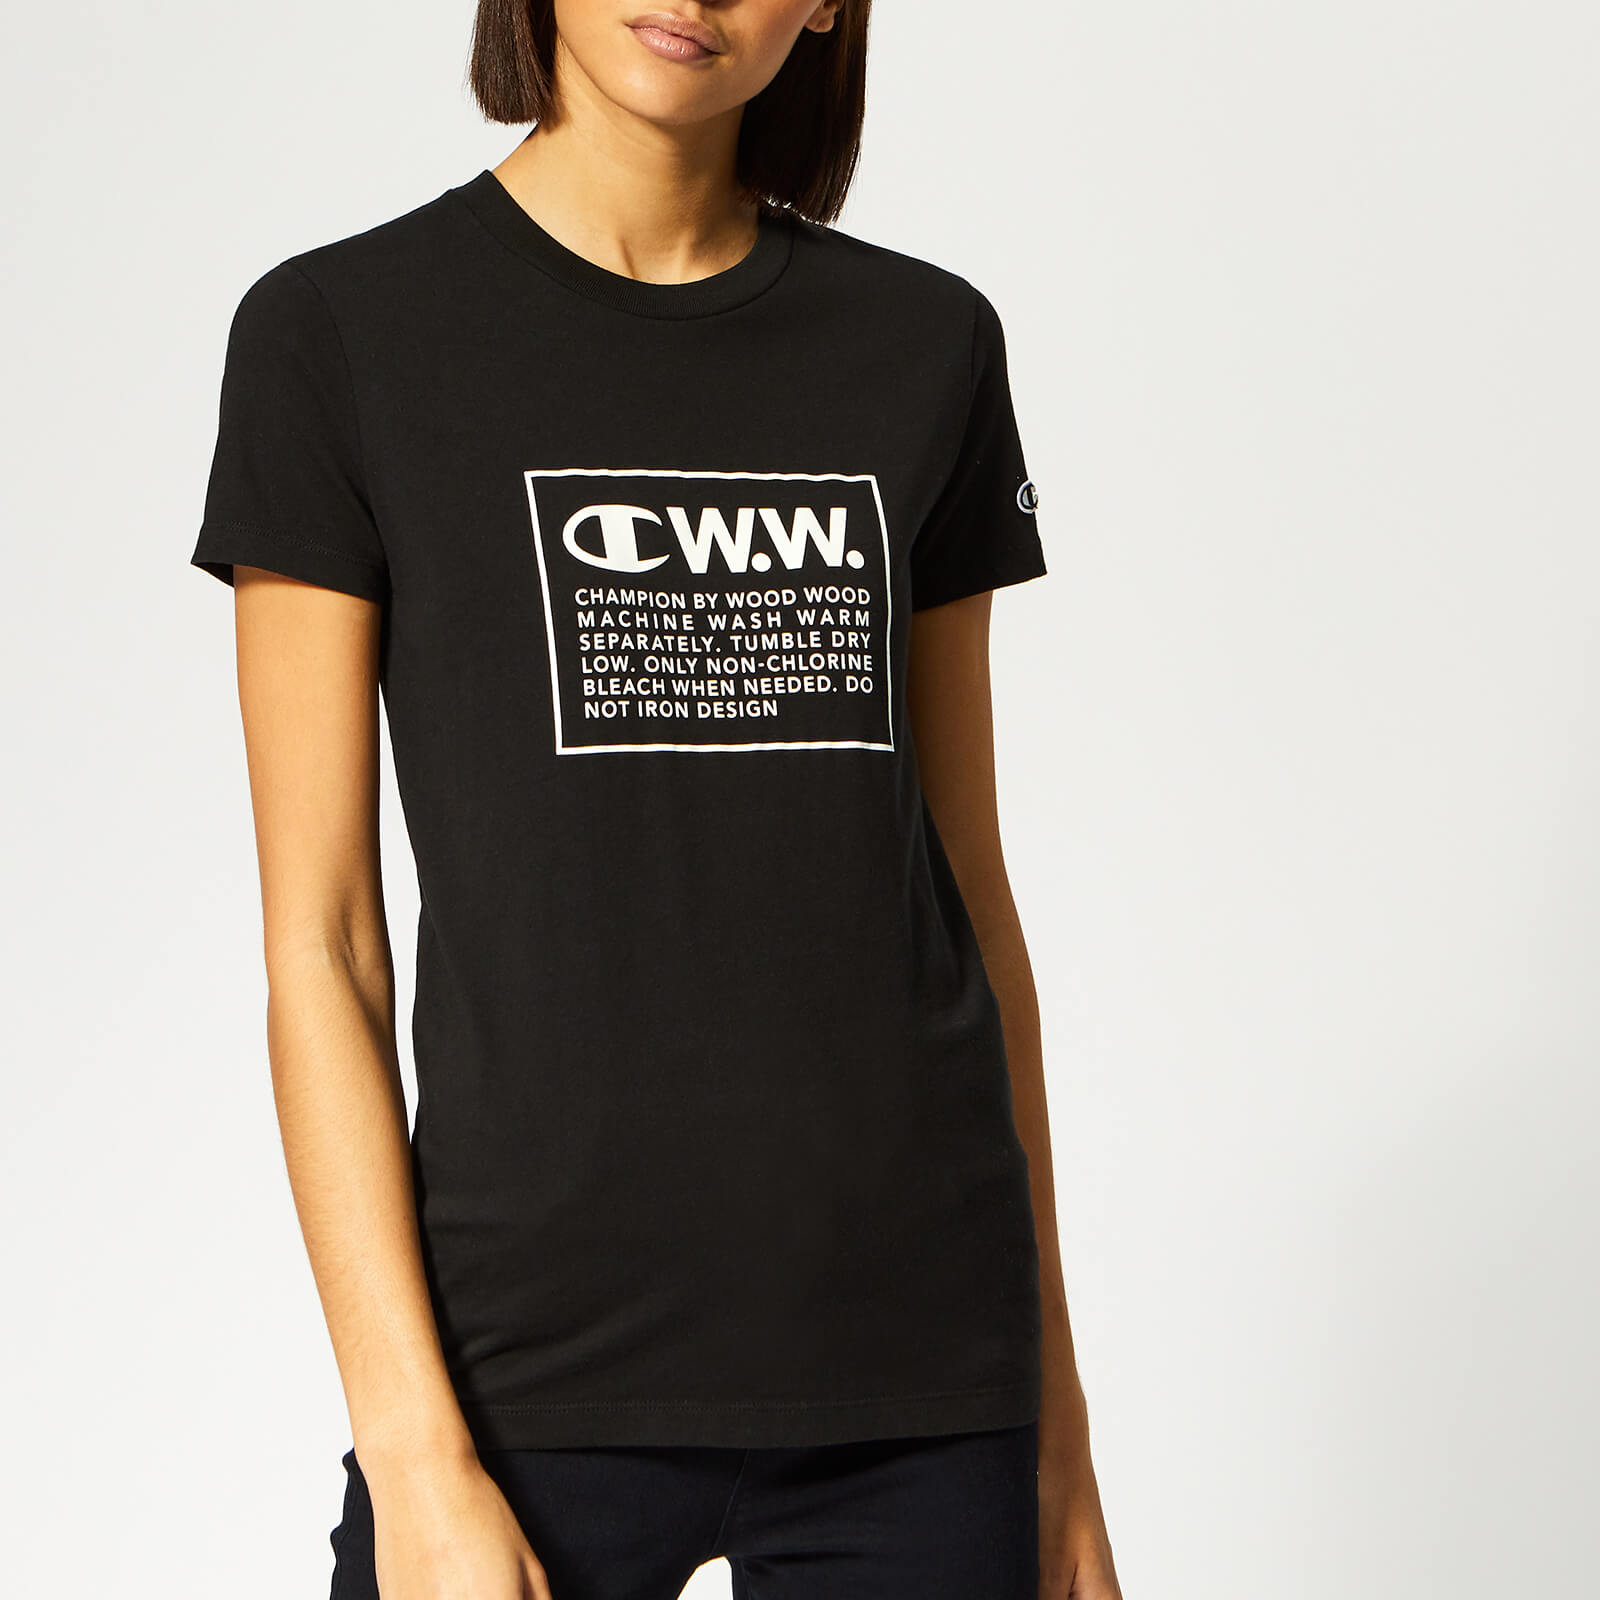 9b09e258 Champion X WOOD WOOD Women's Lyn Crew Neck T-Shirt - Black - Free UK  Delivery over £50